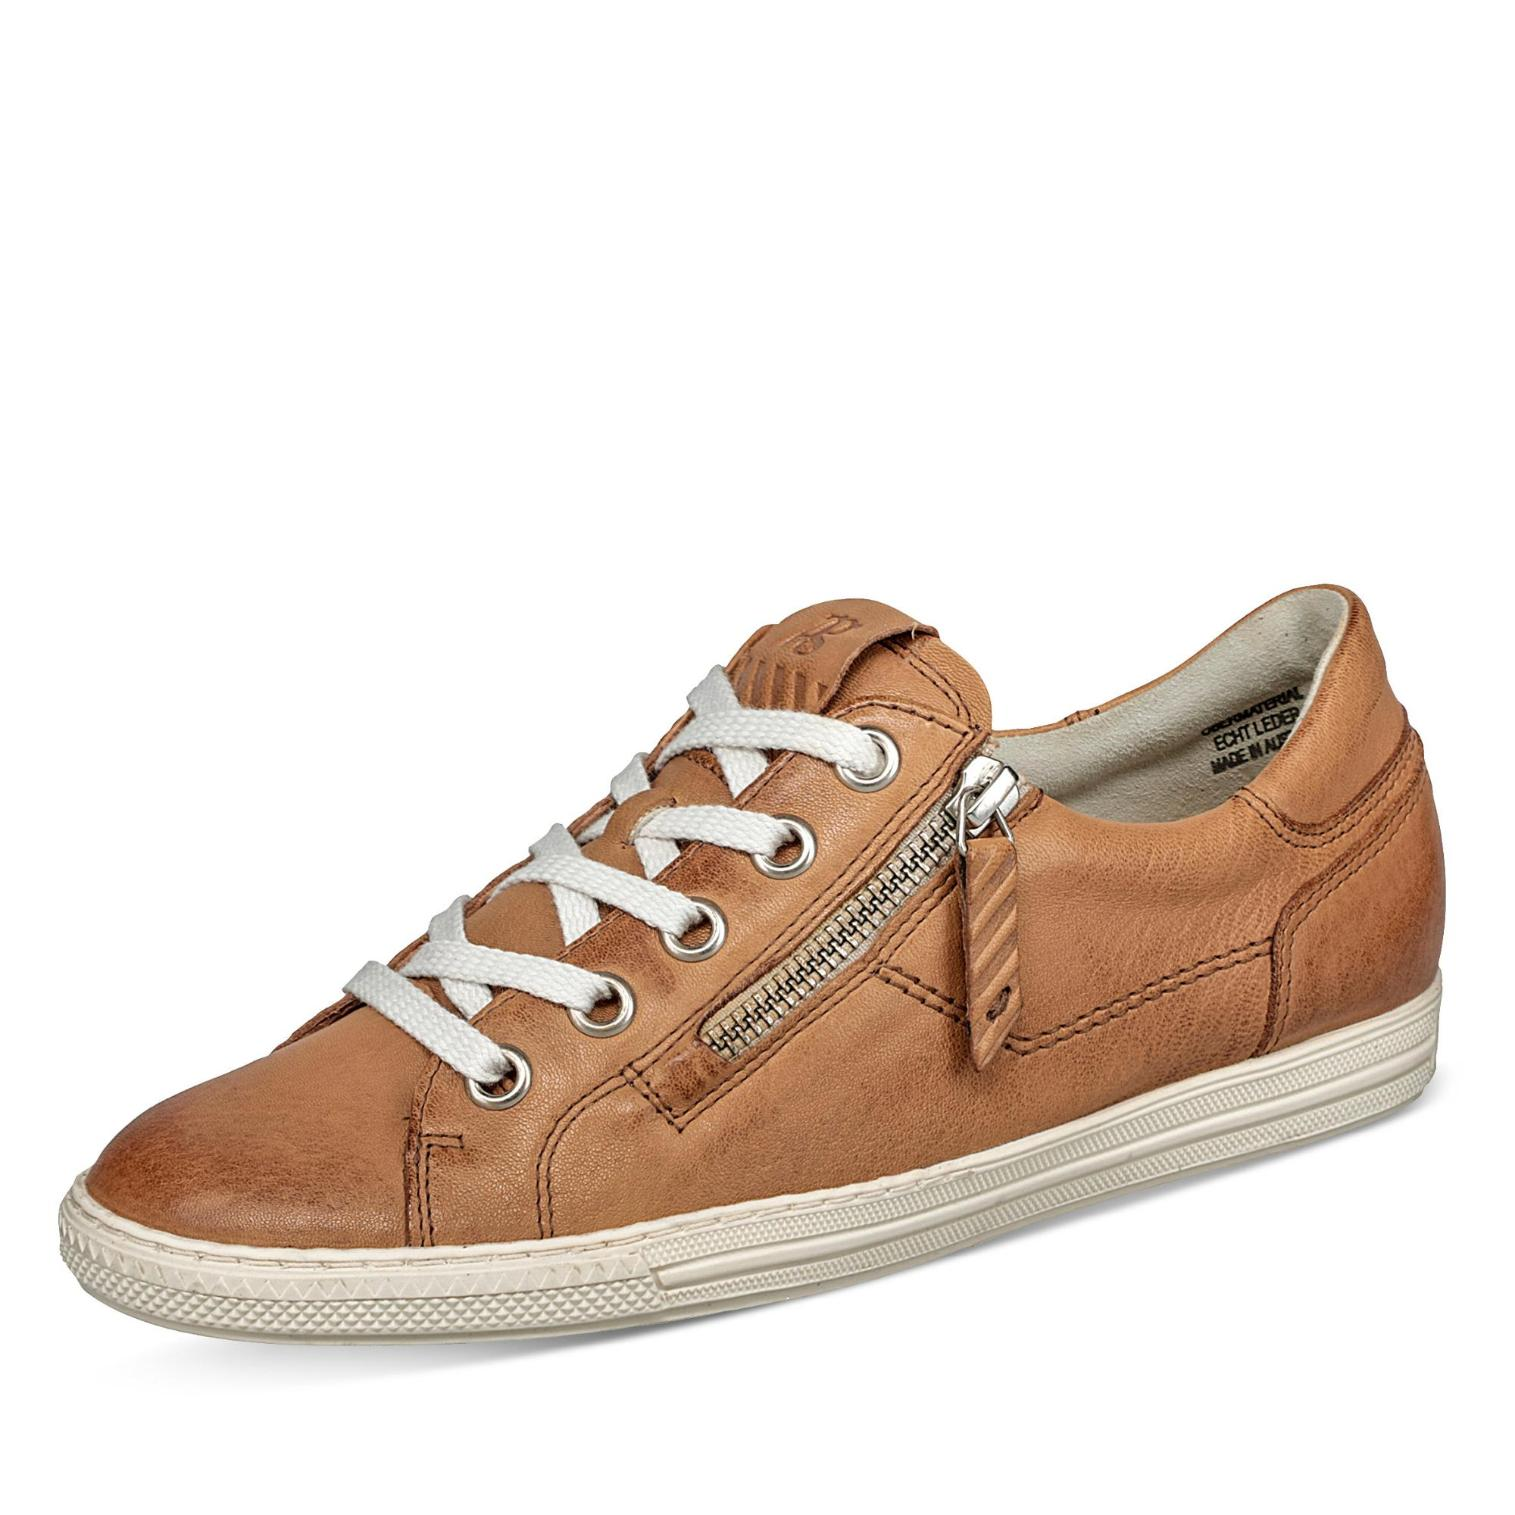 paul green -  Sneaker - Damen - cognac